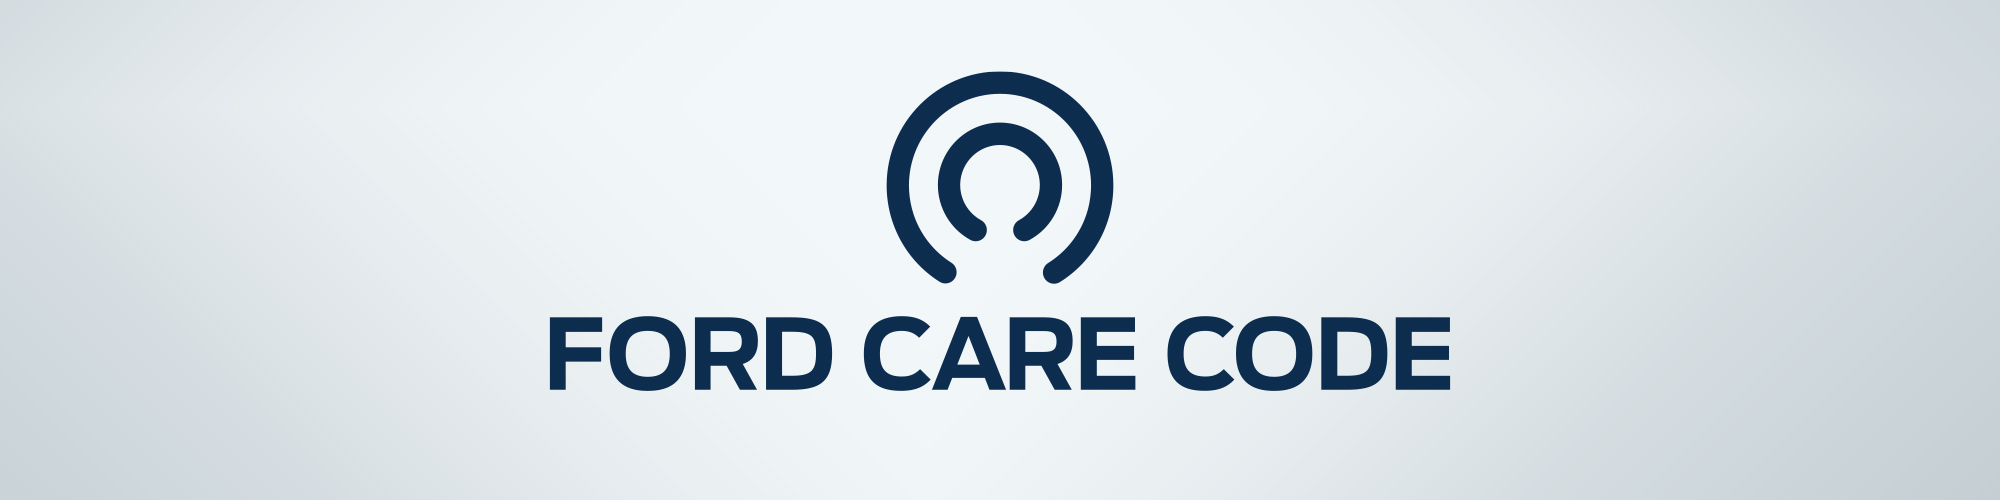 Ford Care Code COVID Secure